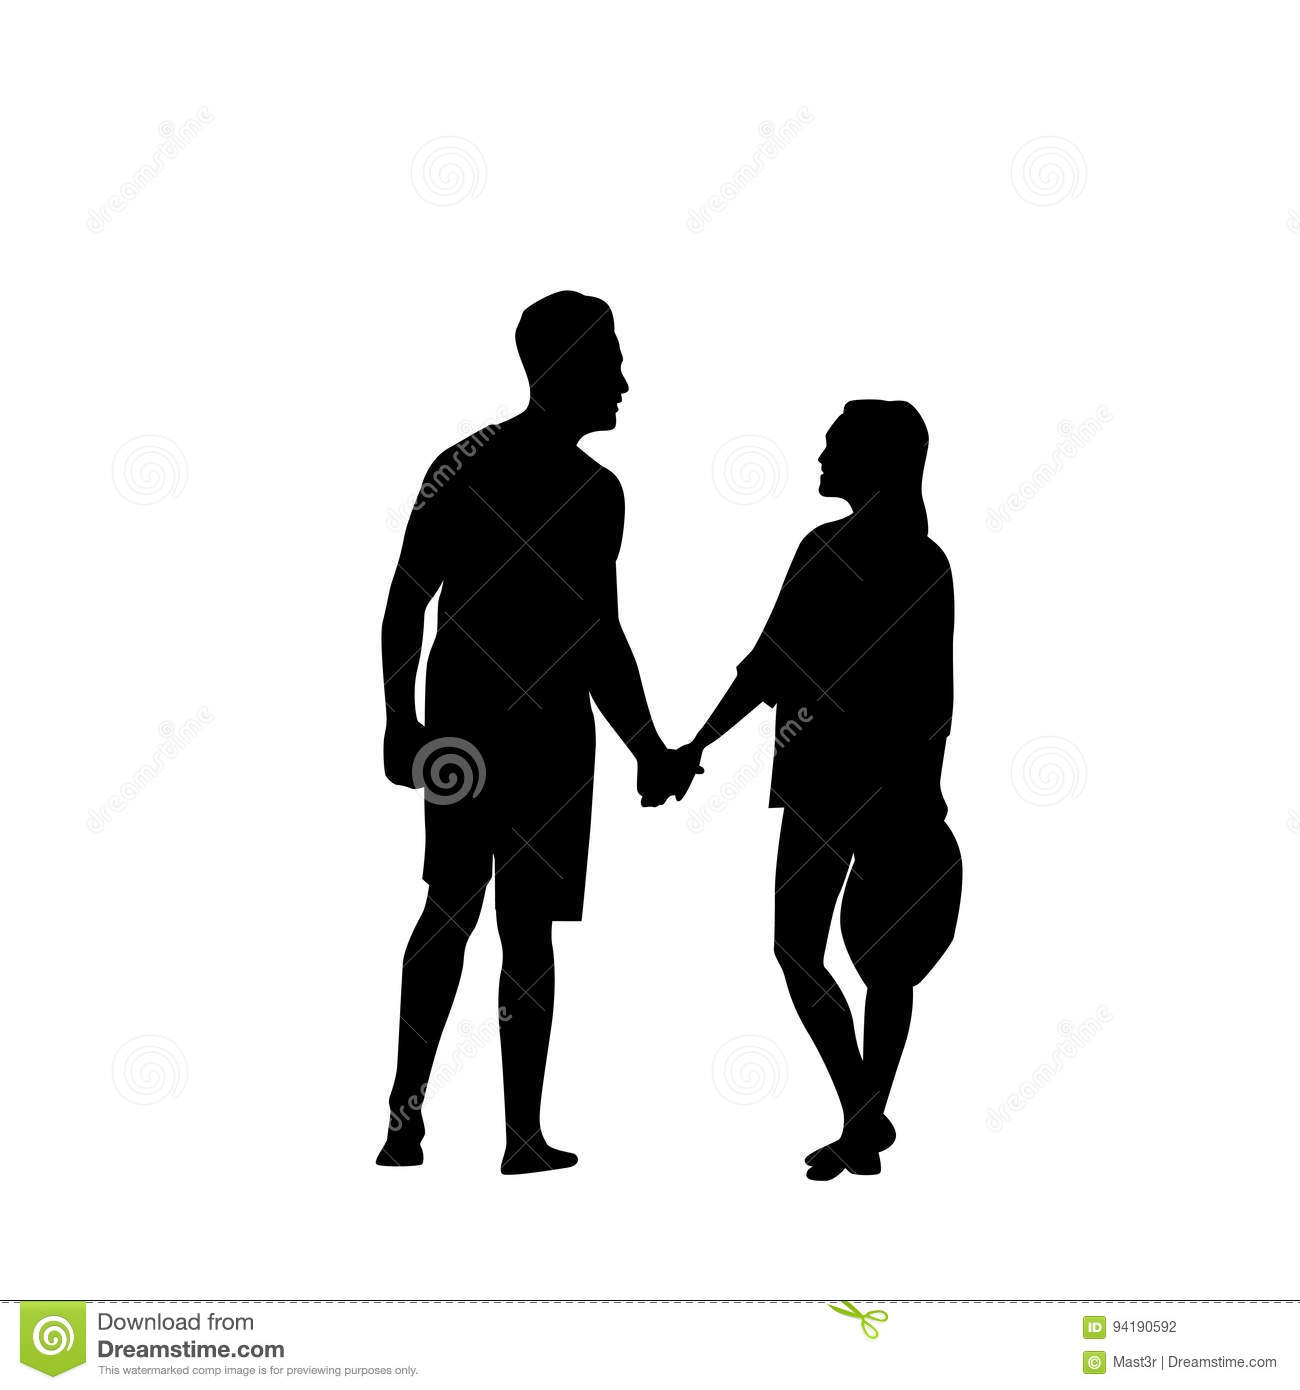 Black silhouette romantic couple holding hands full length isolated over white background lovers man and woman